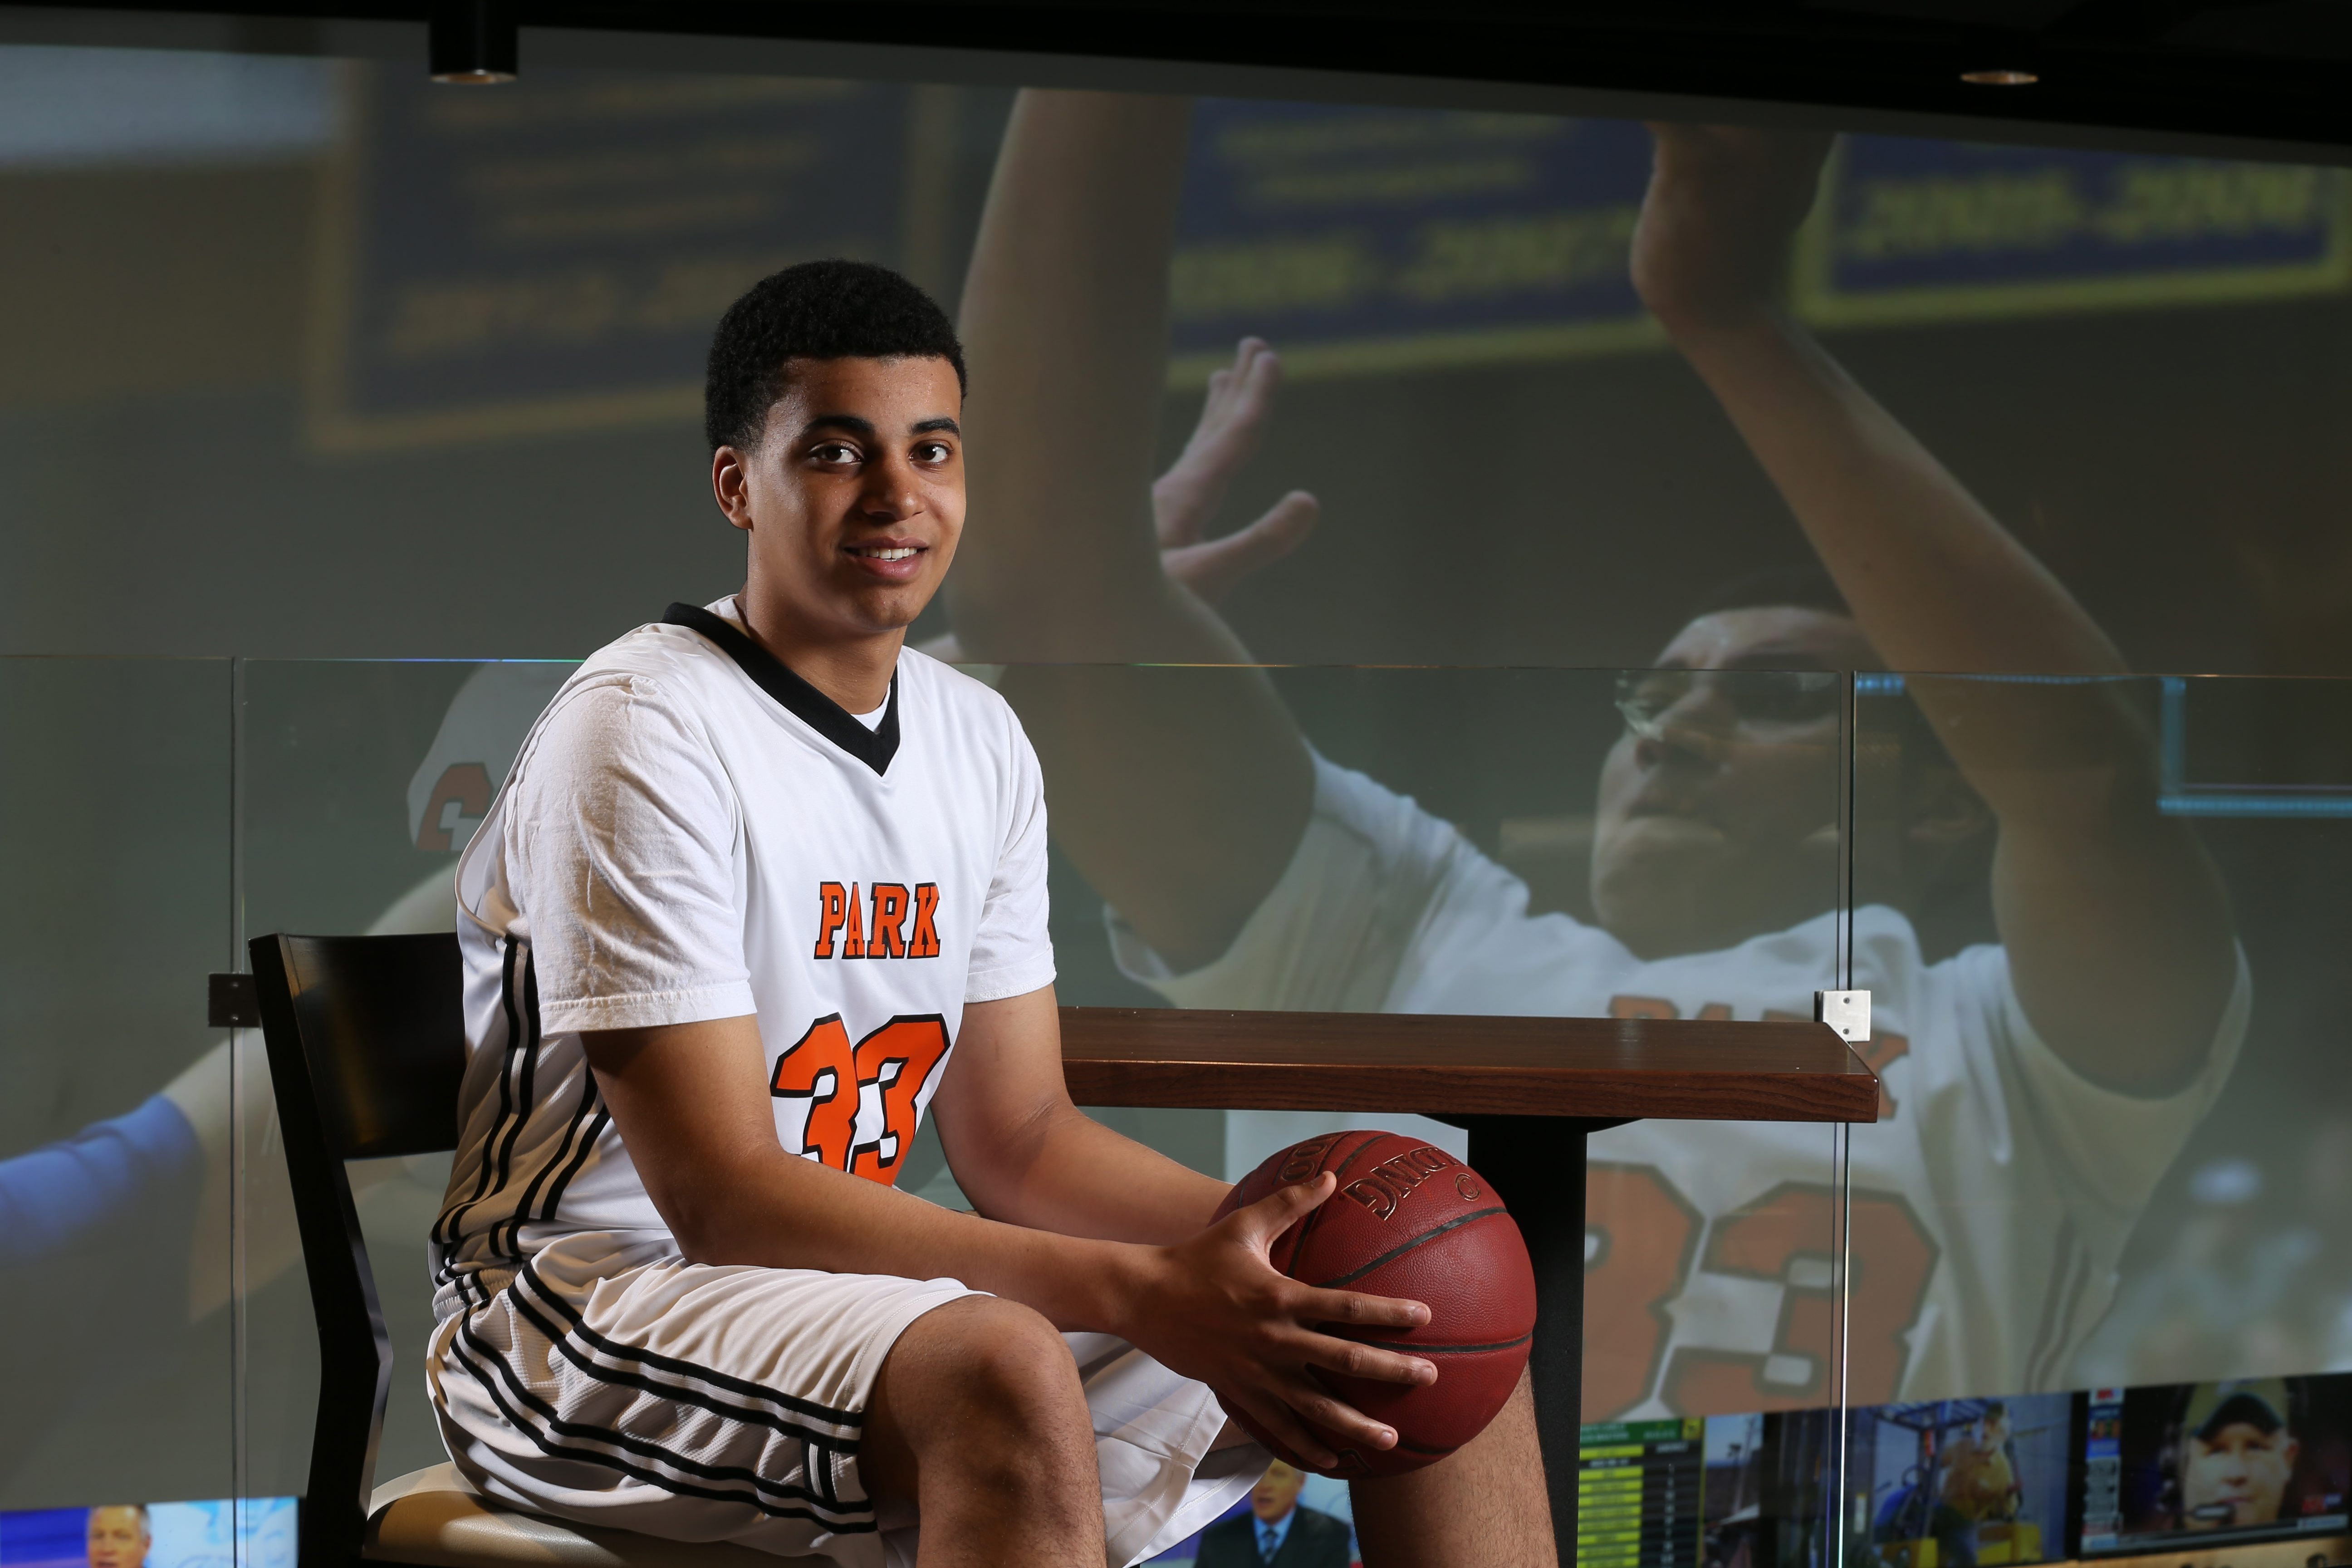 Jordan Nwora  has verbally commited to play at Louisville. The Park School product is a two-time All-Western New York first-team selection. (James P. McCoy/Buffalo News)